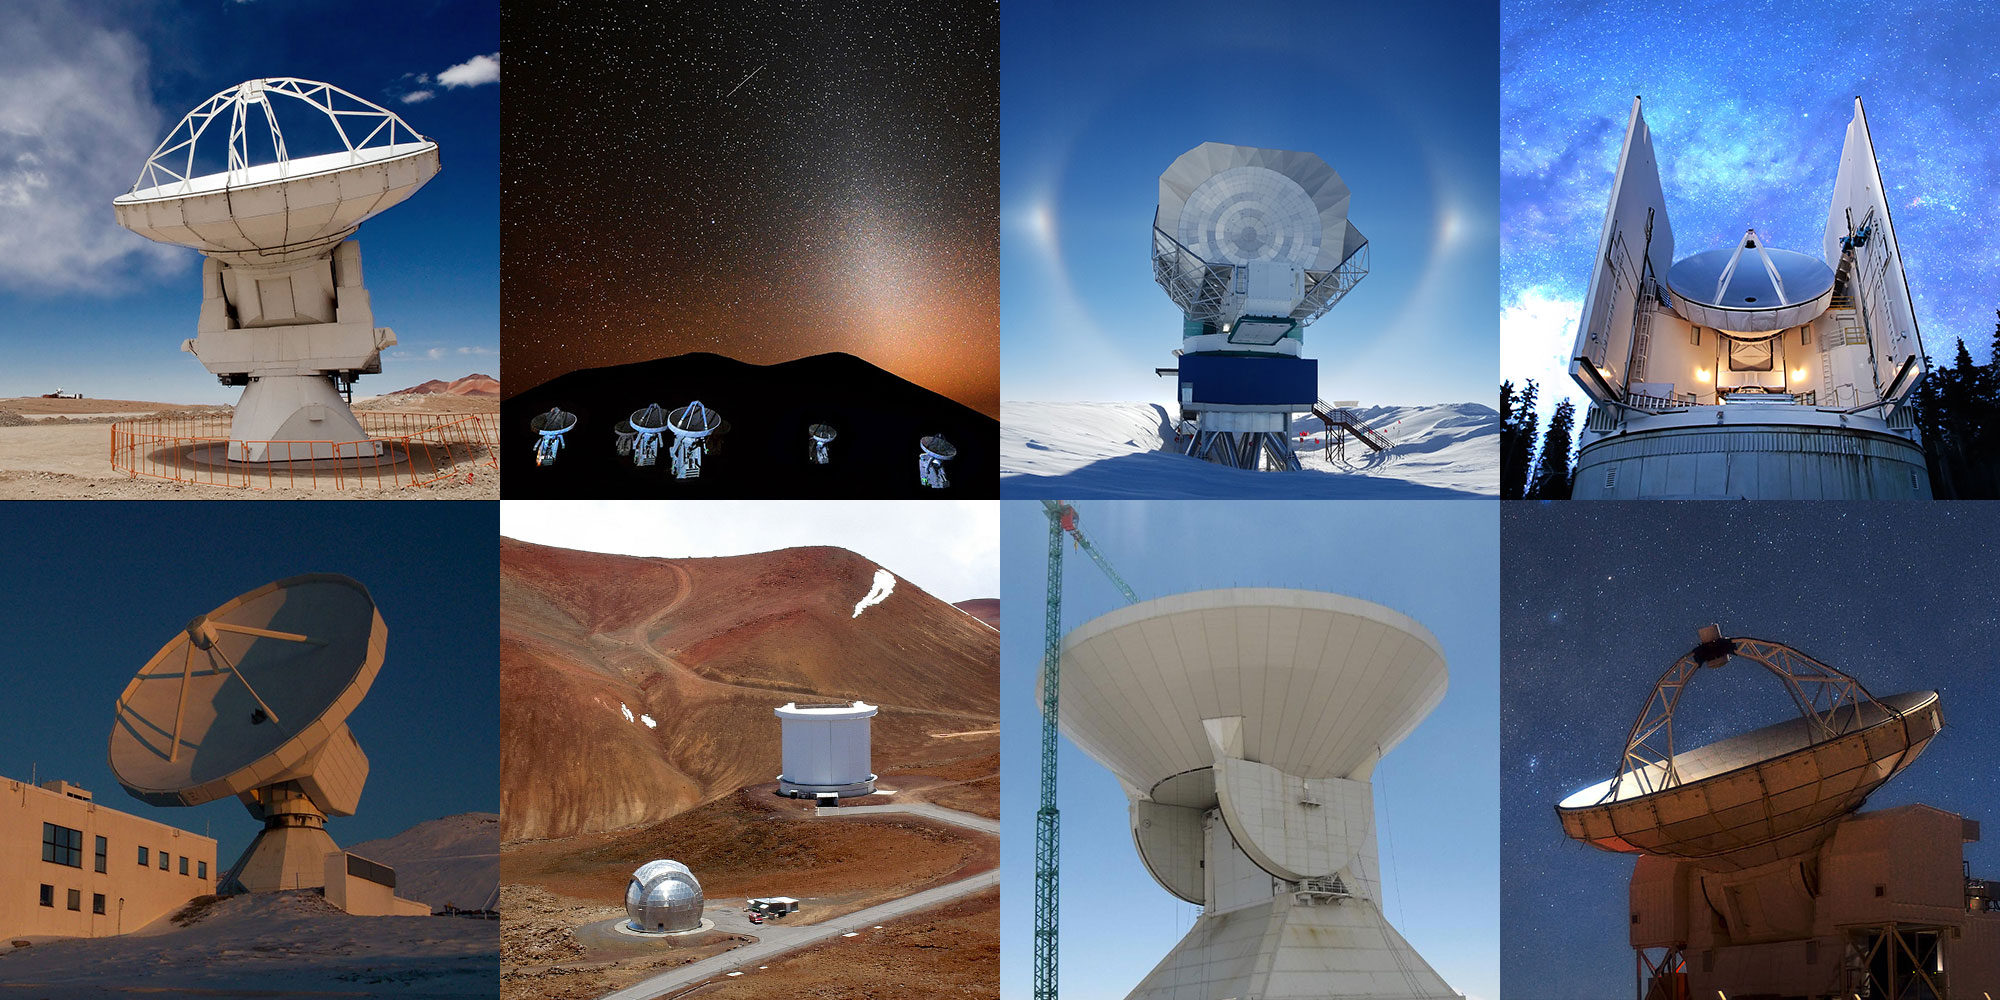 COLLAGE: 8 telescopes